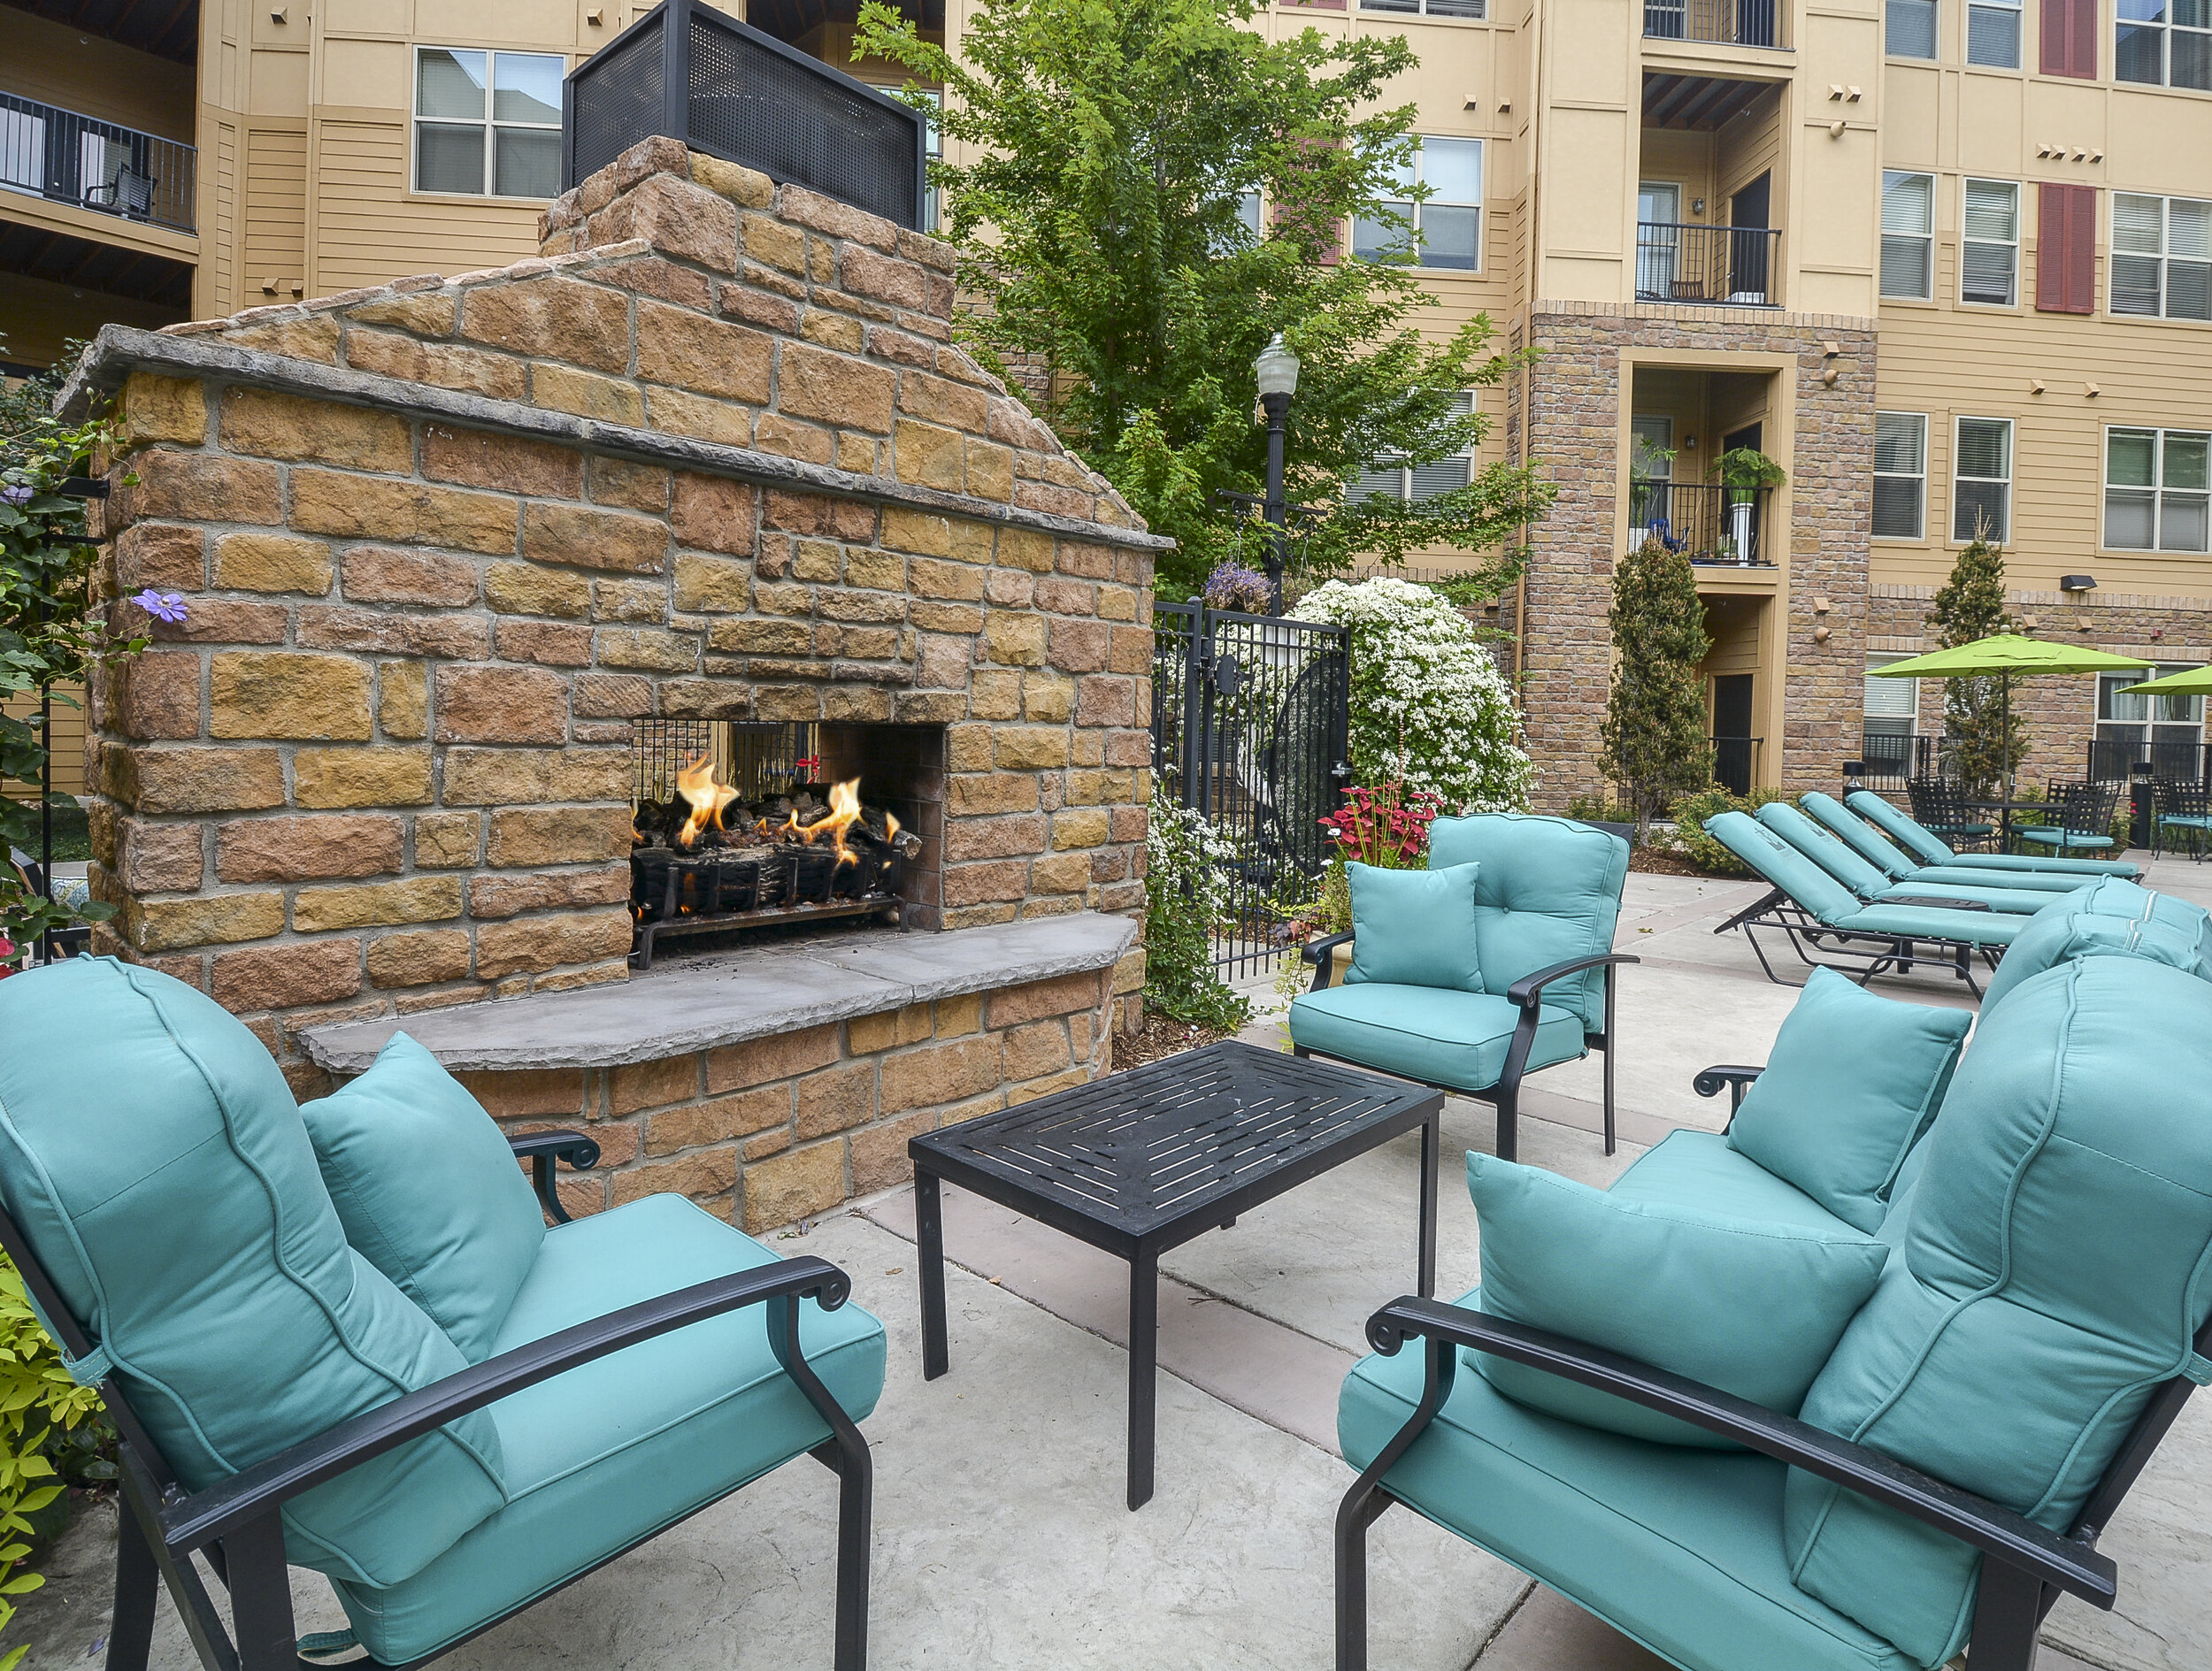 13-Outdoor Lounge Area with Fireplace.jpg